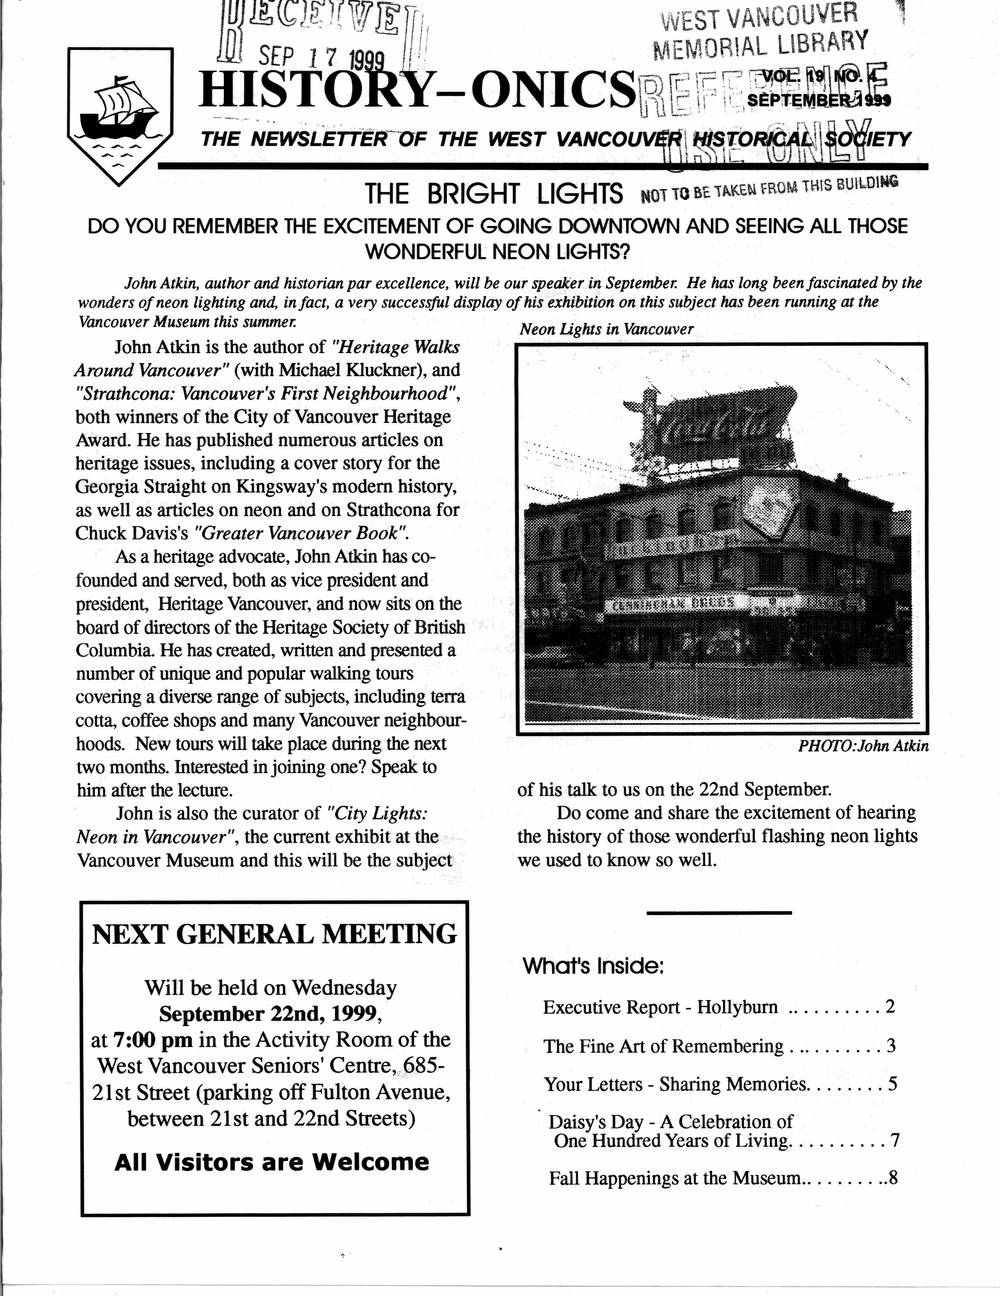 History-onics (West Vancouver, BC: West Vancouver Historical Society), September 1999